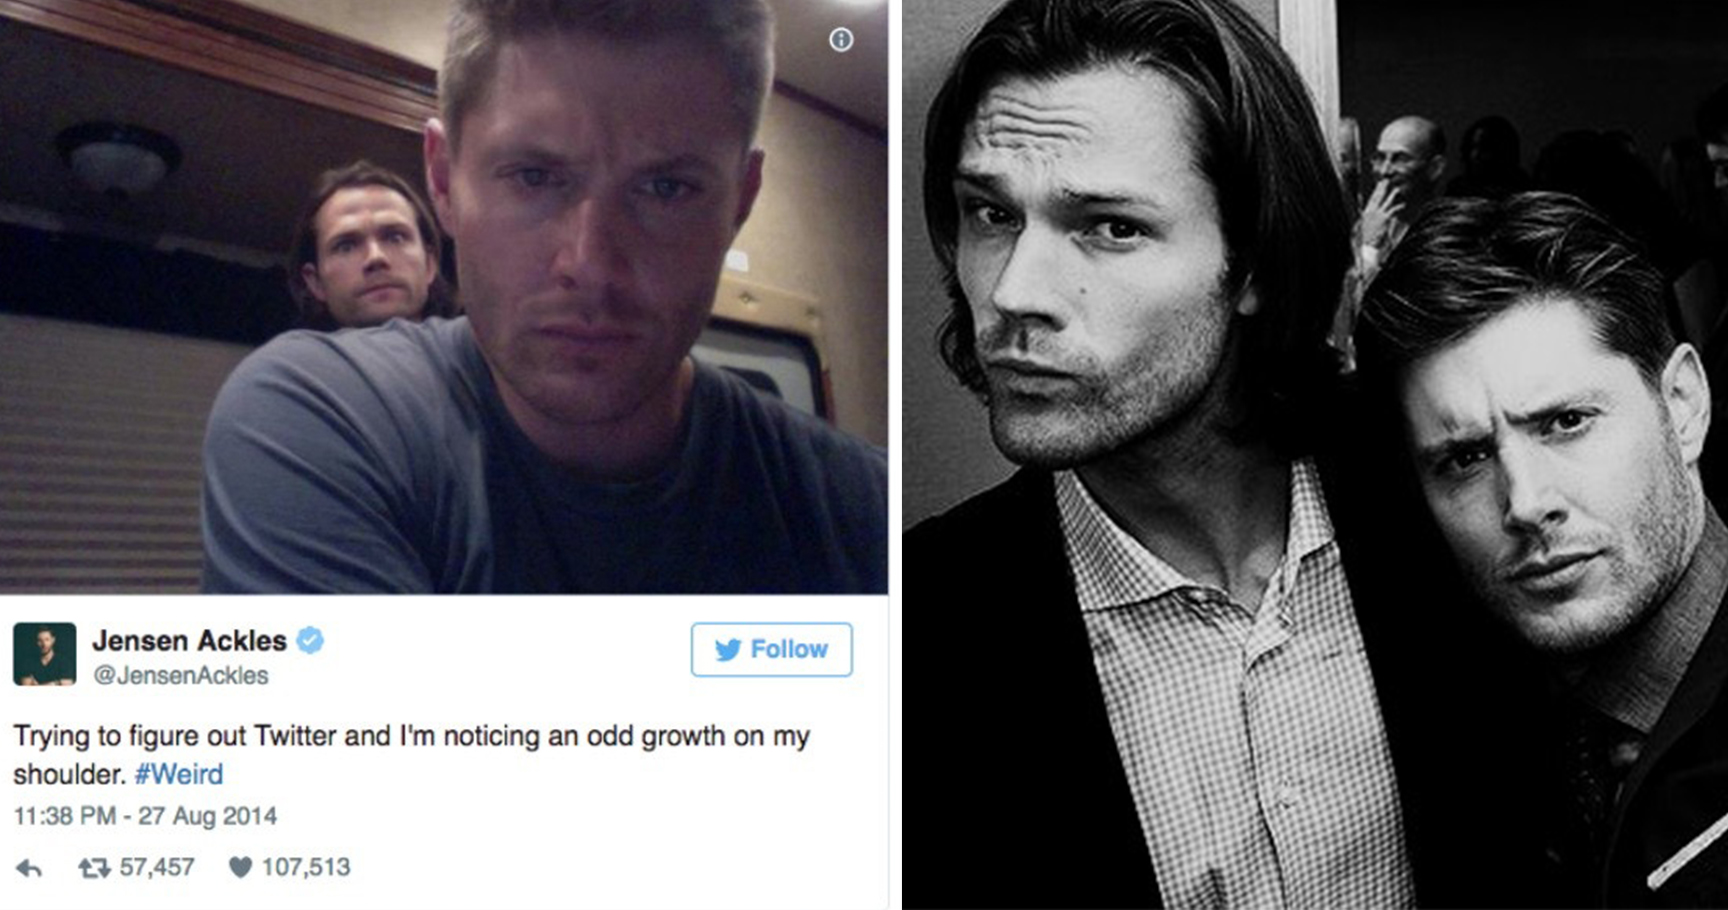 Jensen Ackles and Jared Padaleckis Friendship in Real